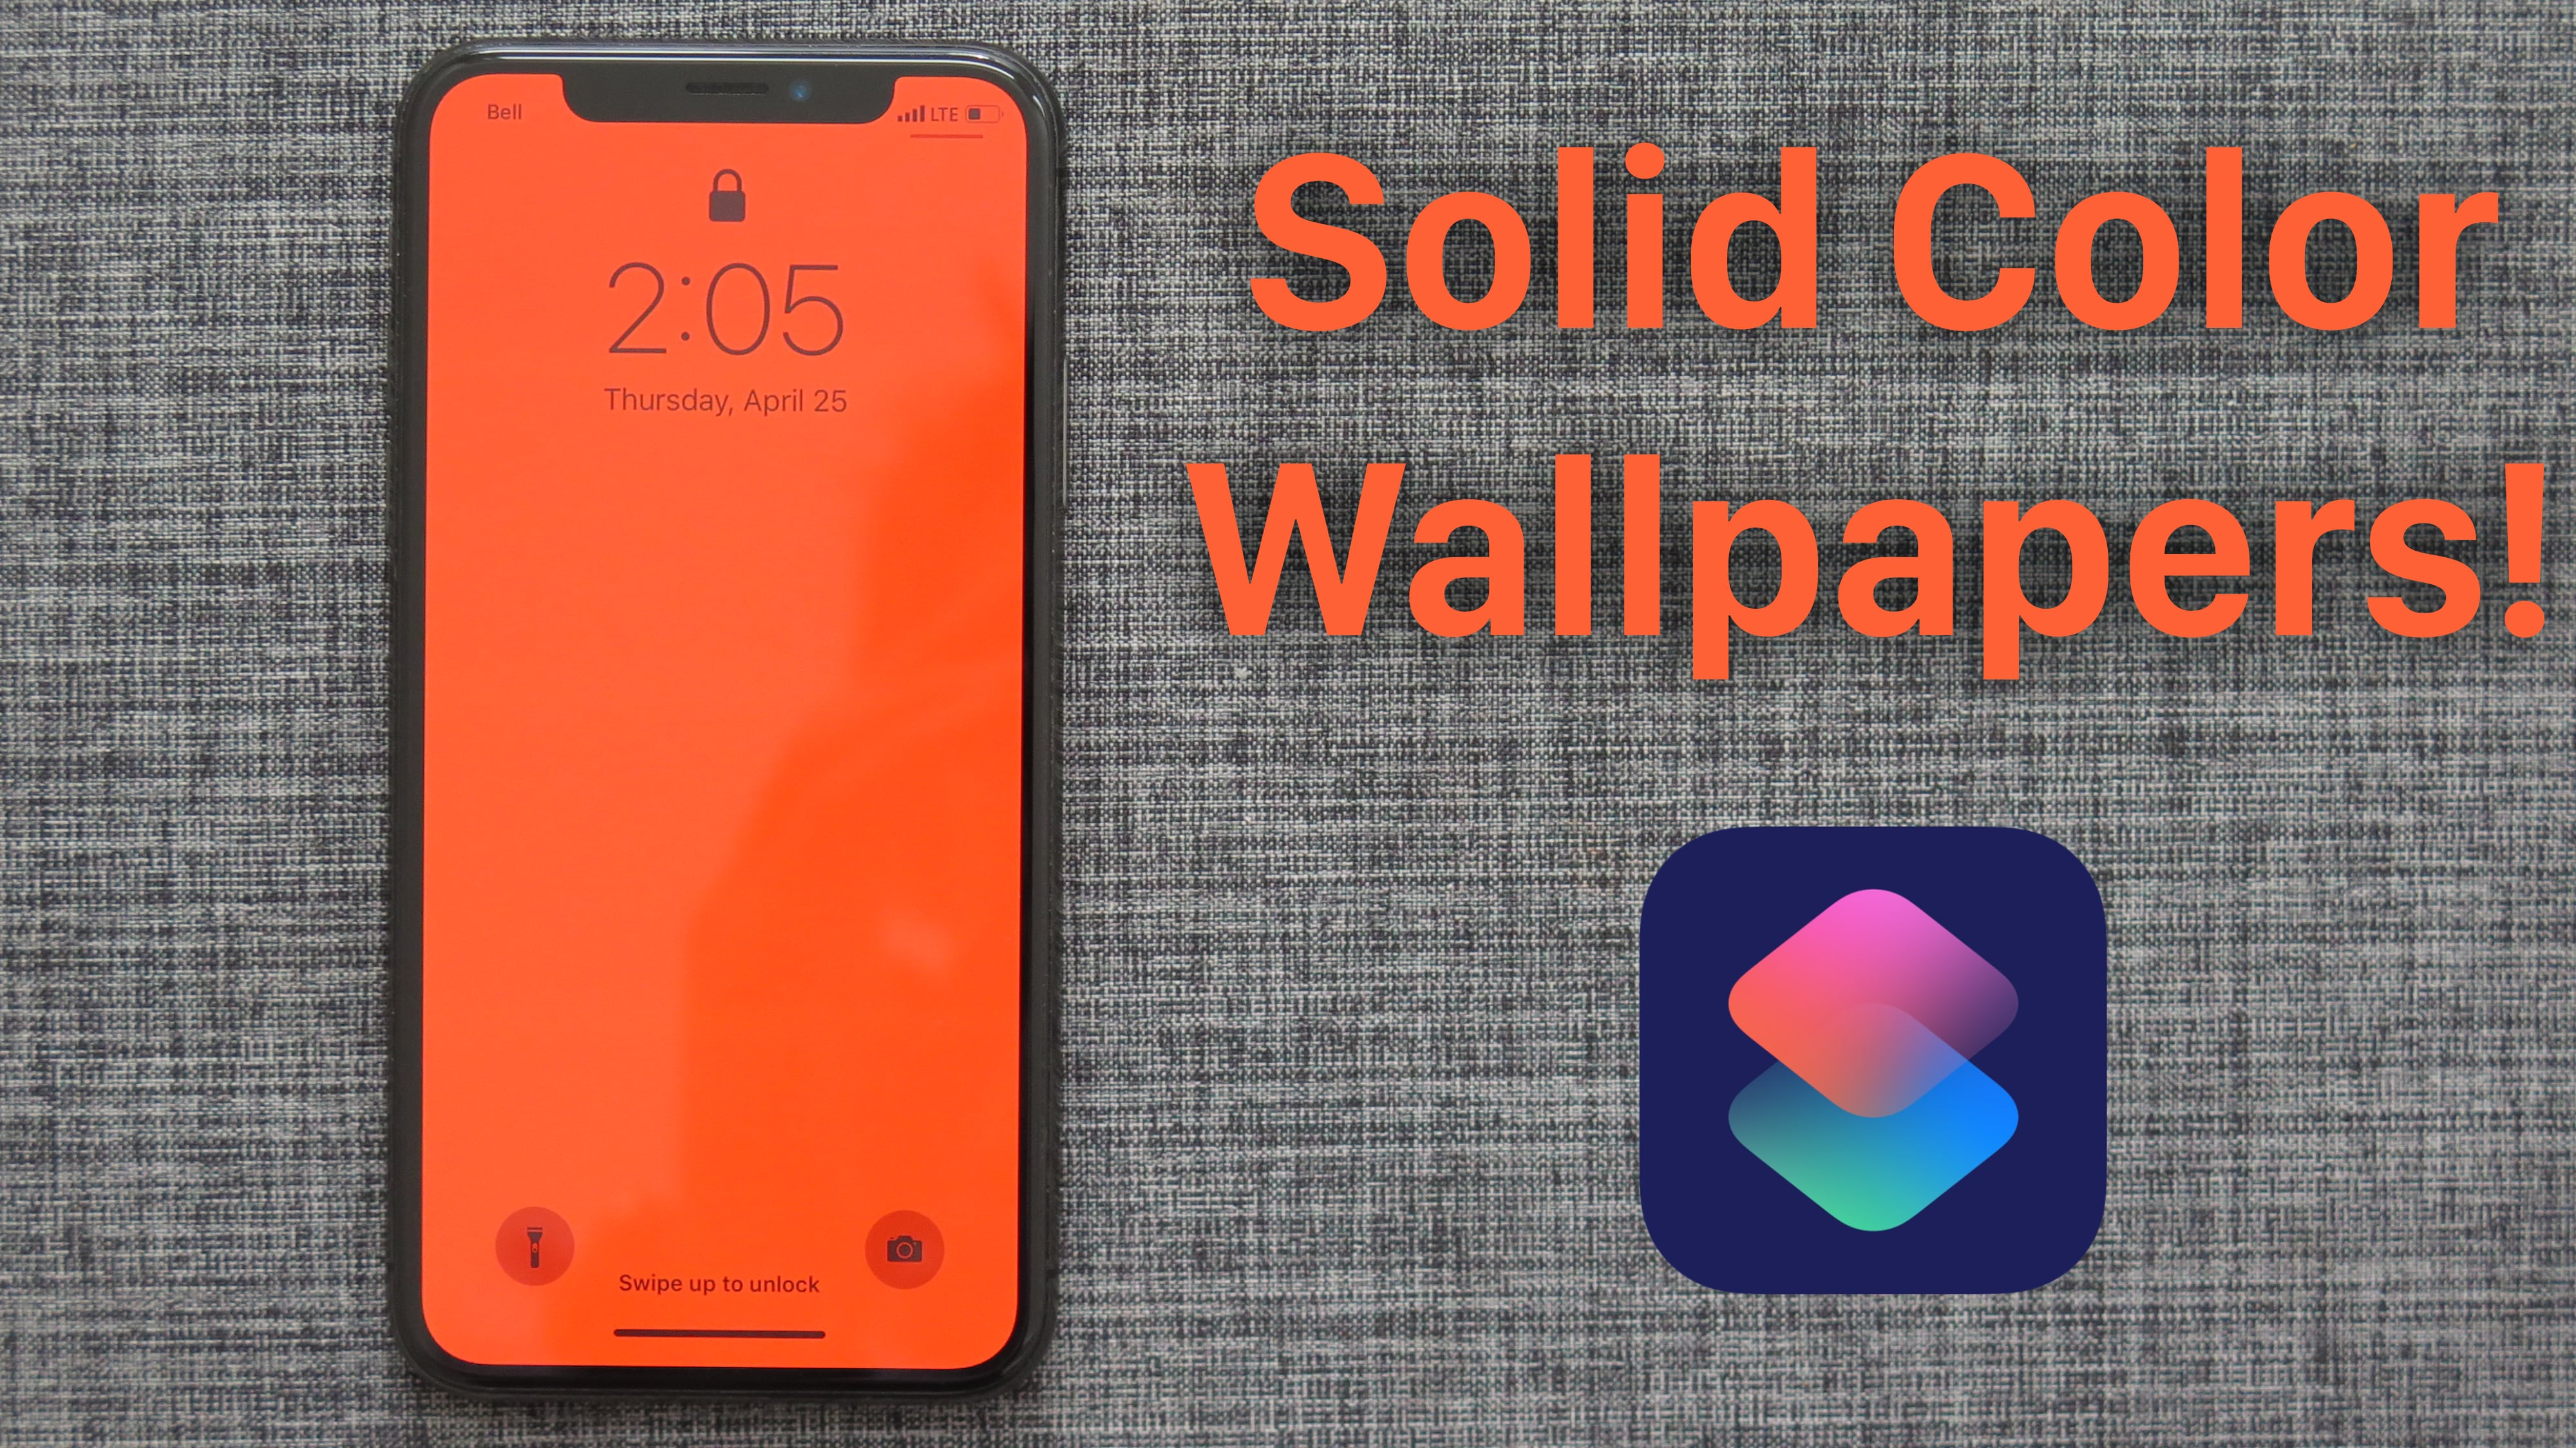 Solid Color Wallpapers With This Siri